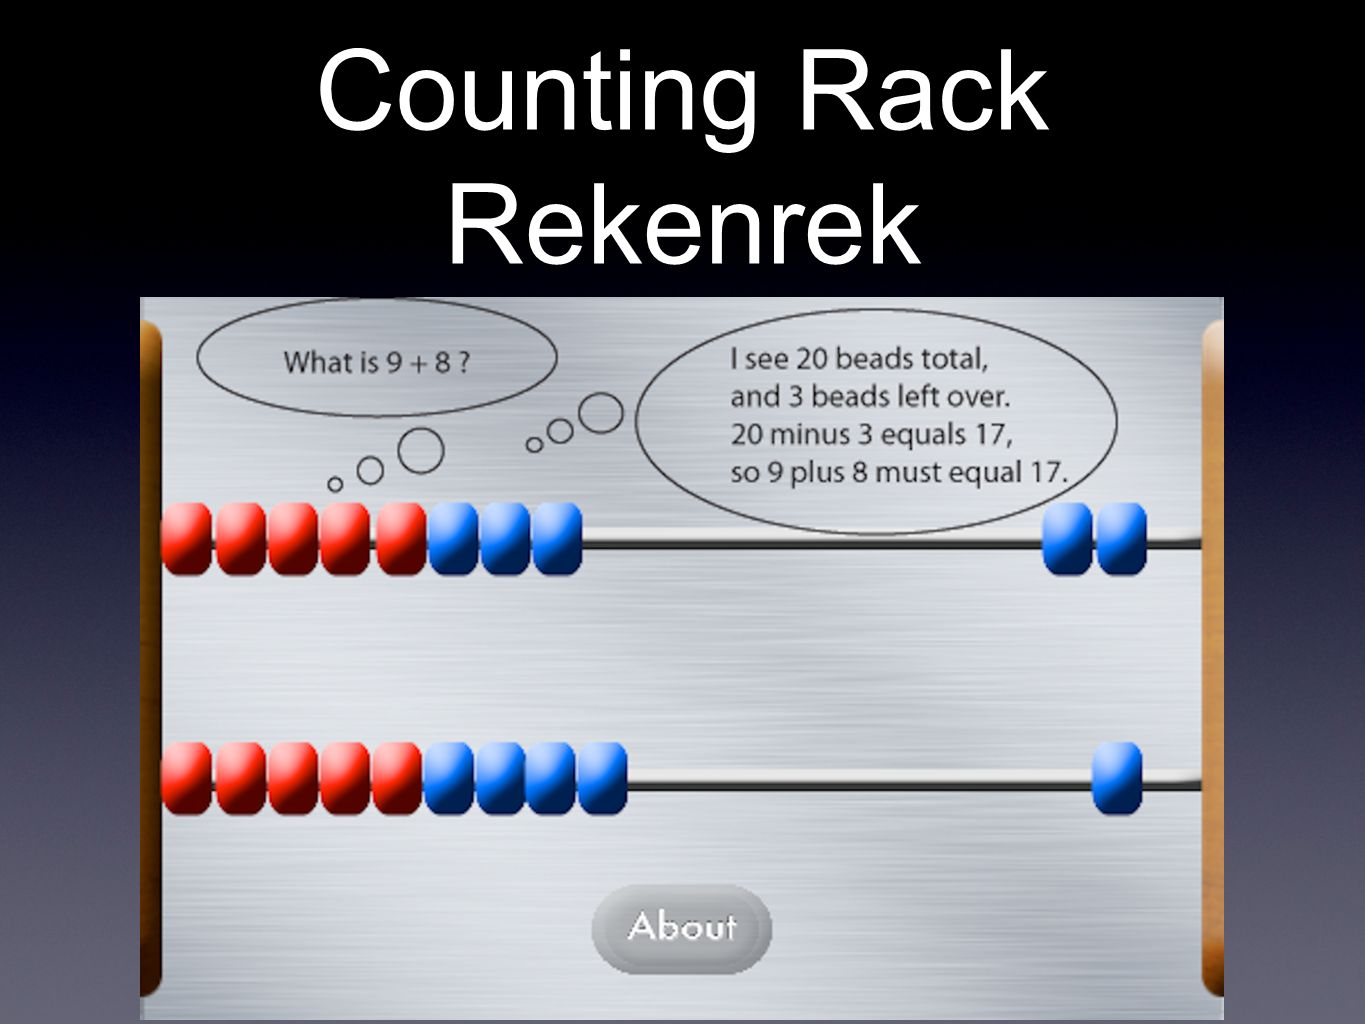 Counting Rack Rekenrek